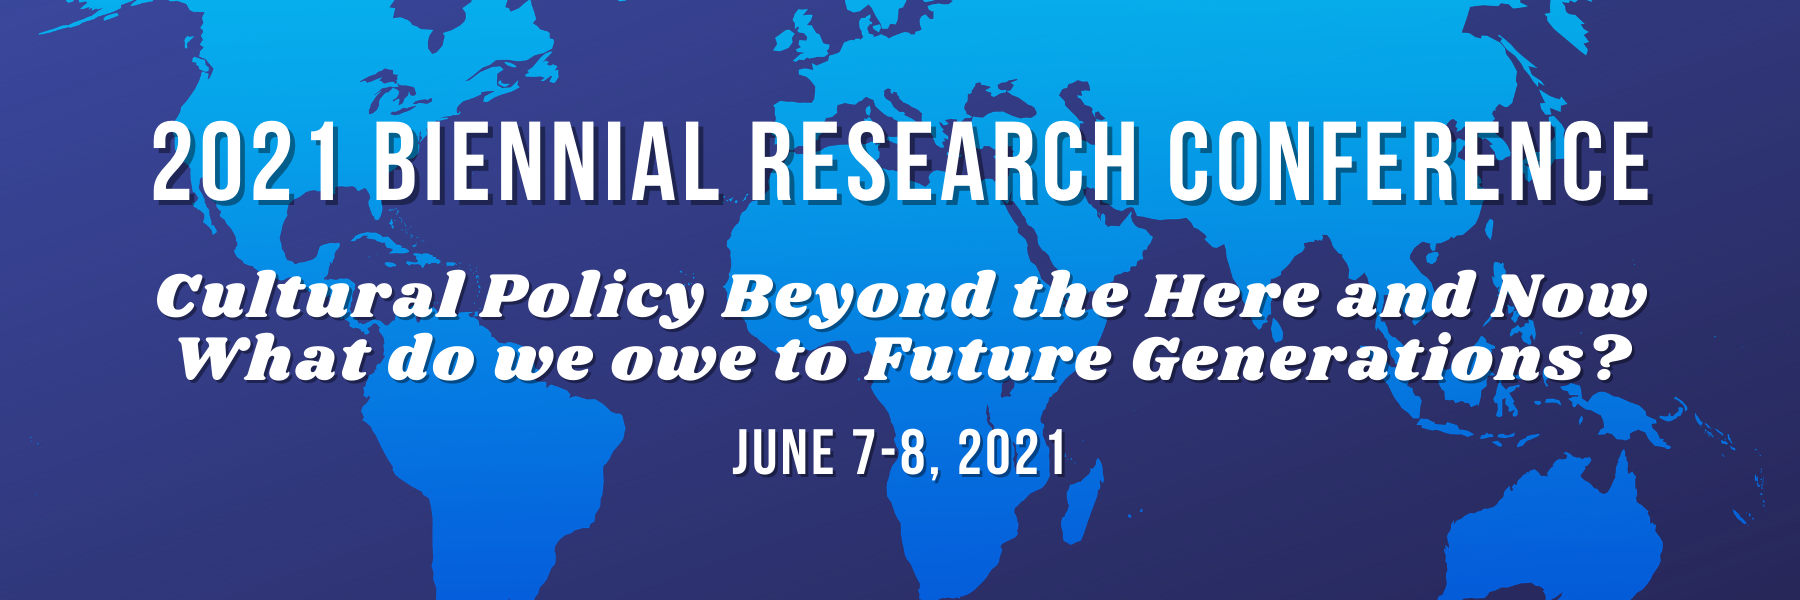 2021 Biennial Research Conference